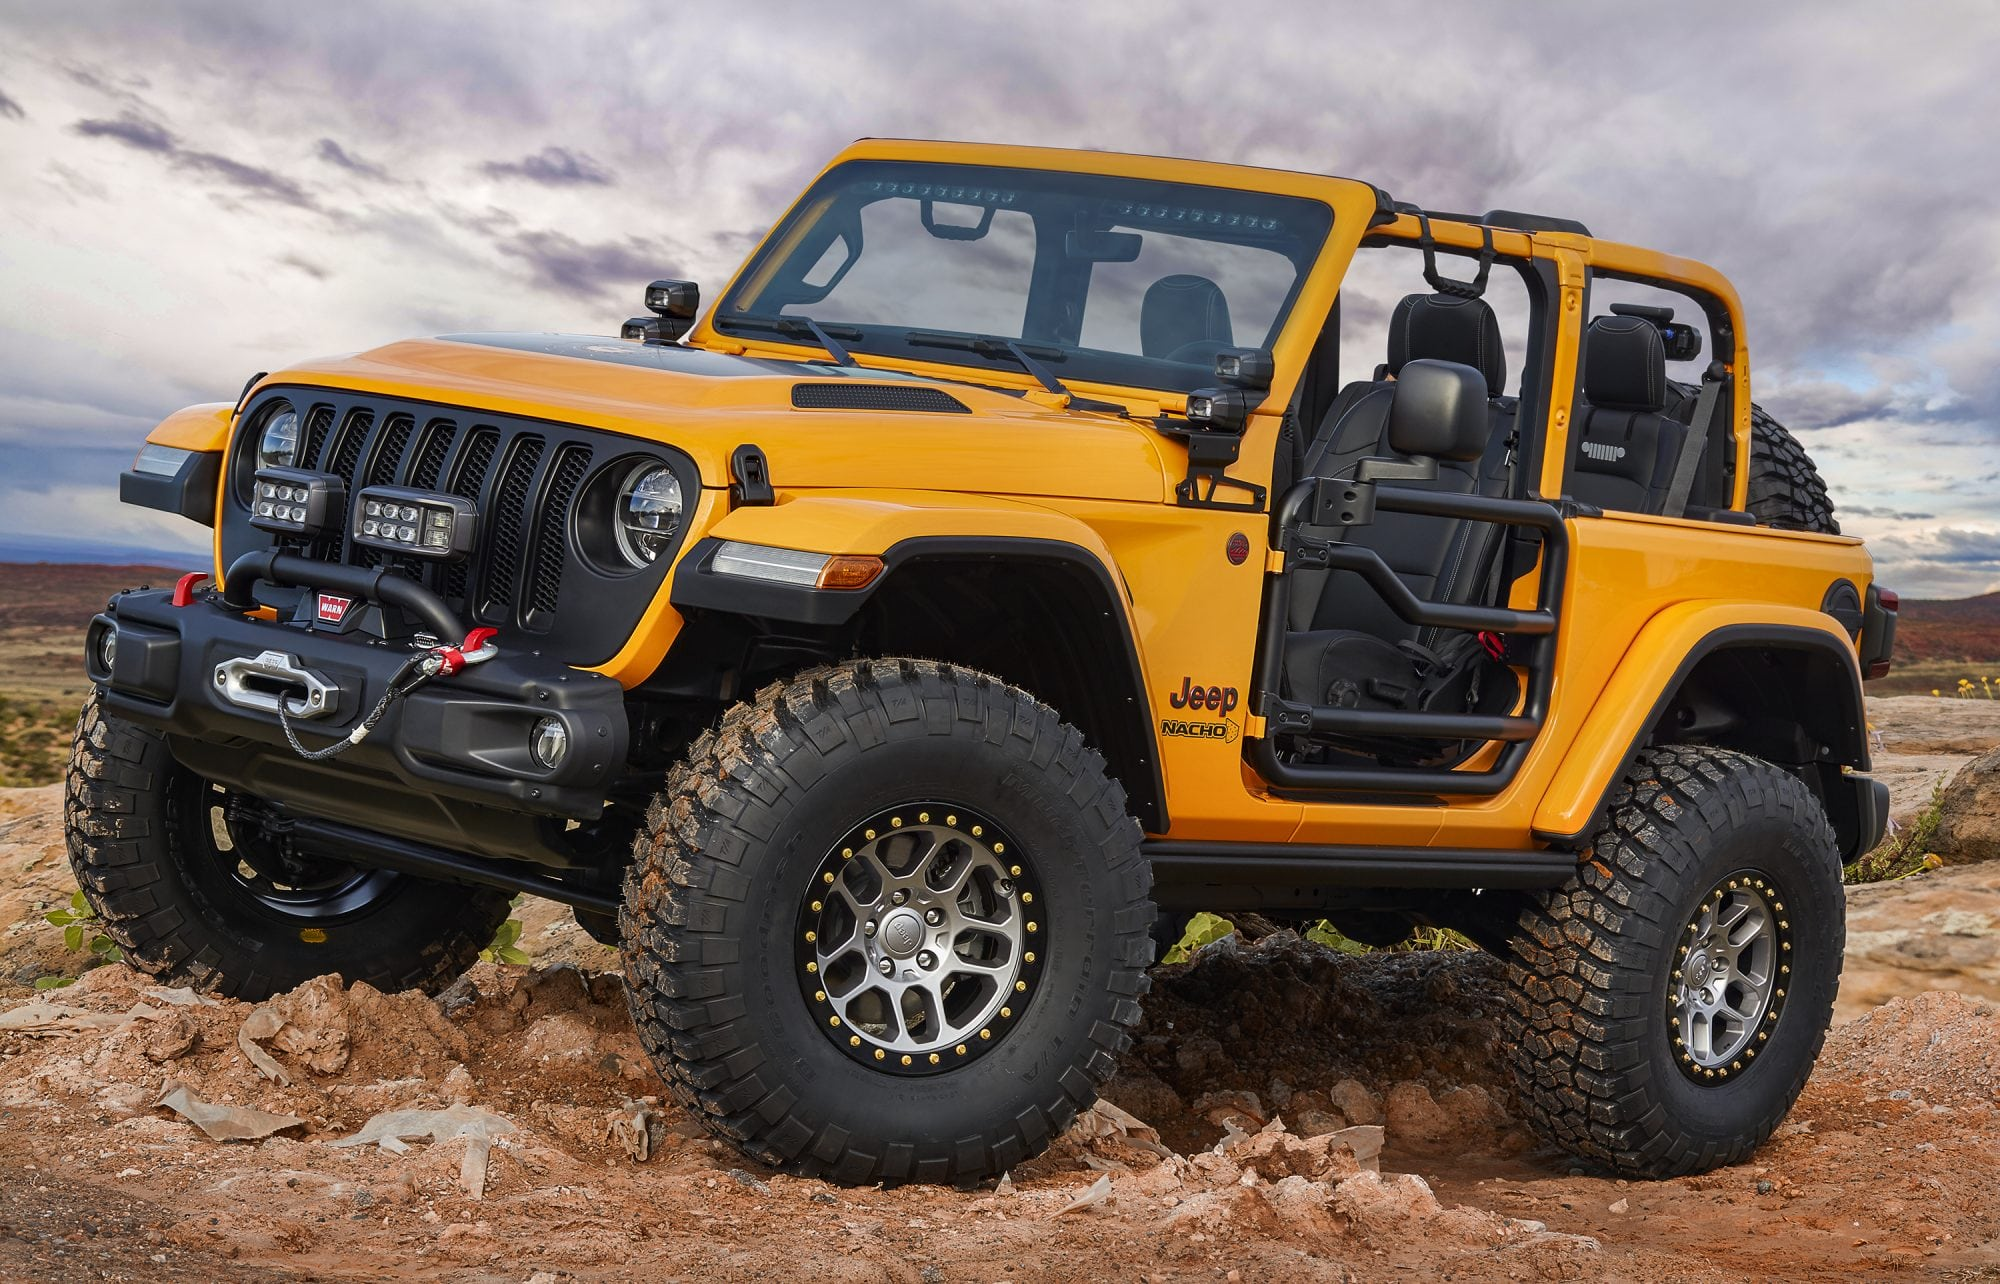 Jeep Mopar Unveil 7 Concepts for Moab Easter Jeep Safari CarNewsCafe